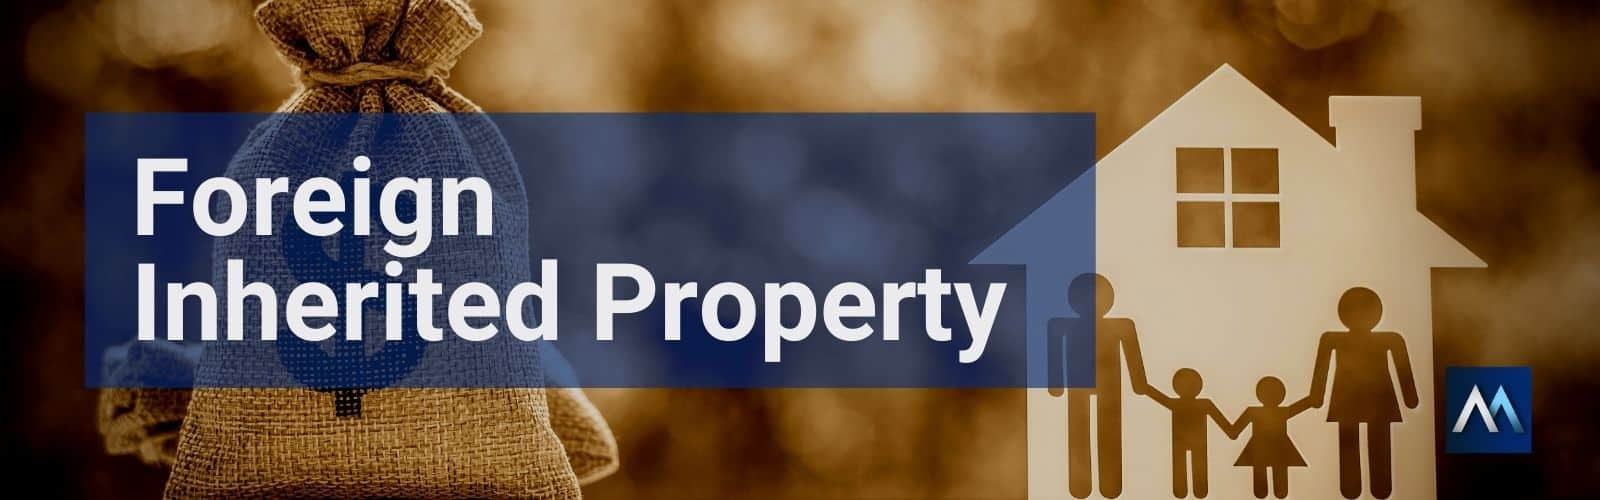 Do I have to pay taxes on inherited property